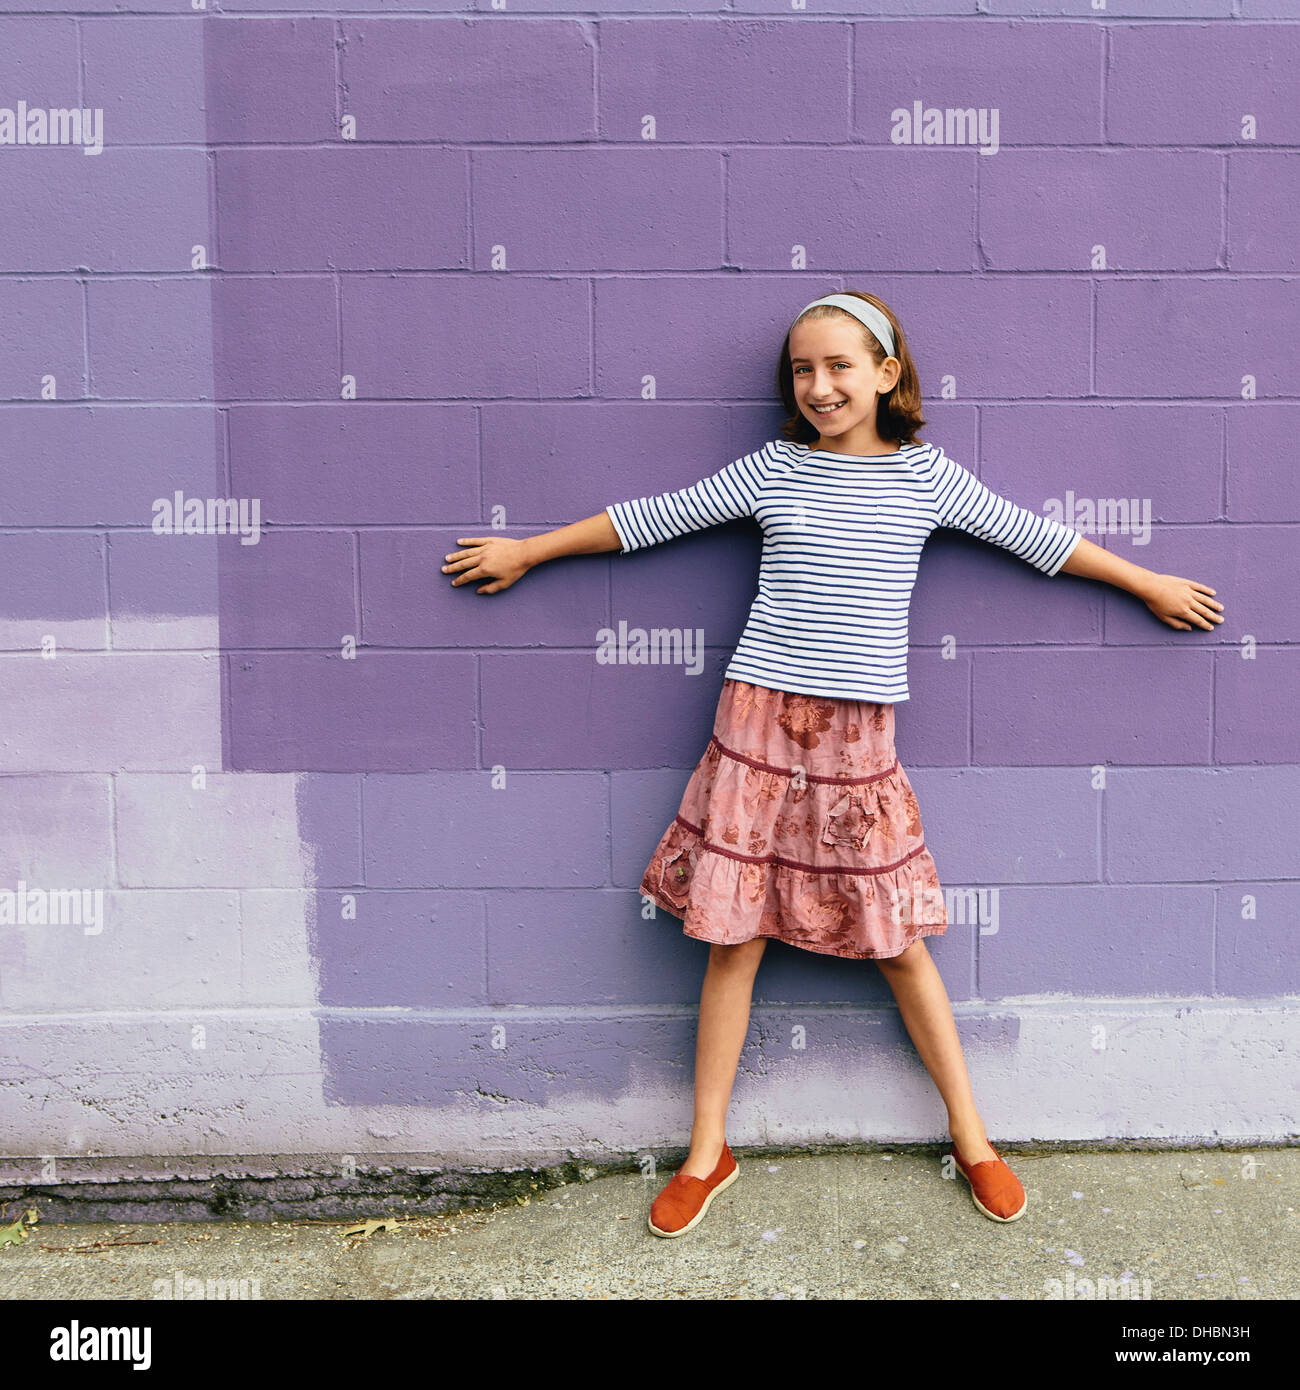 A ten year old girl in a tiered skirt, standing with her arms outstretched, leaning against a wall. - Stock Image